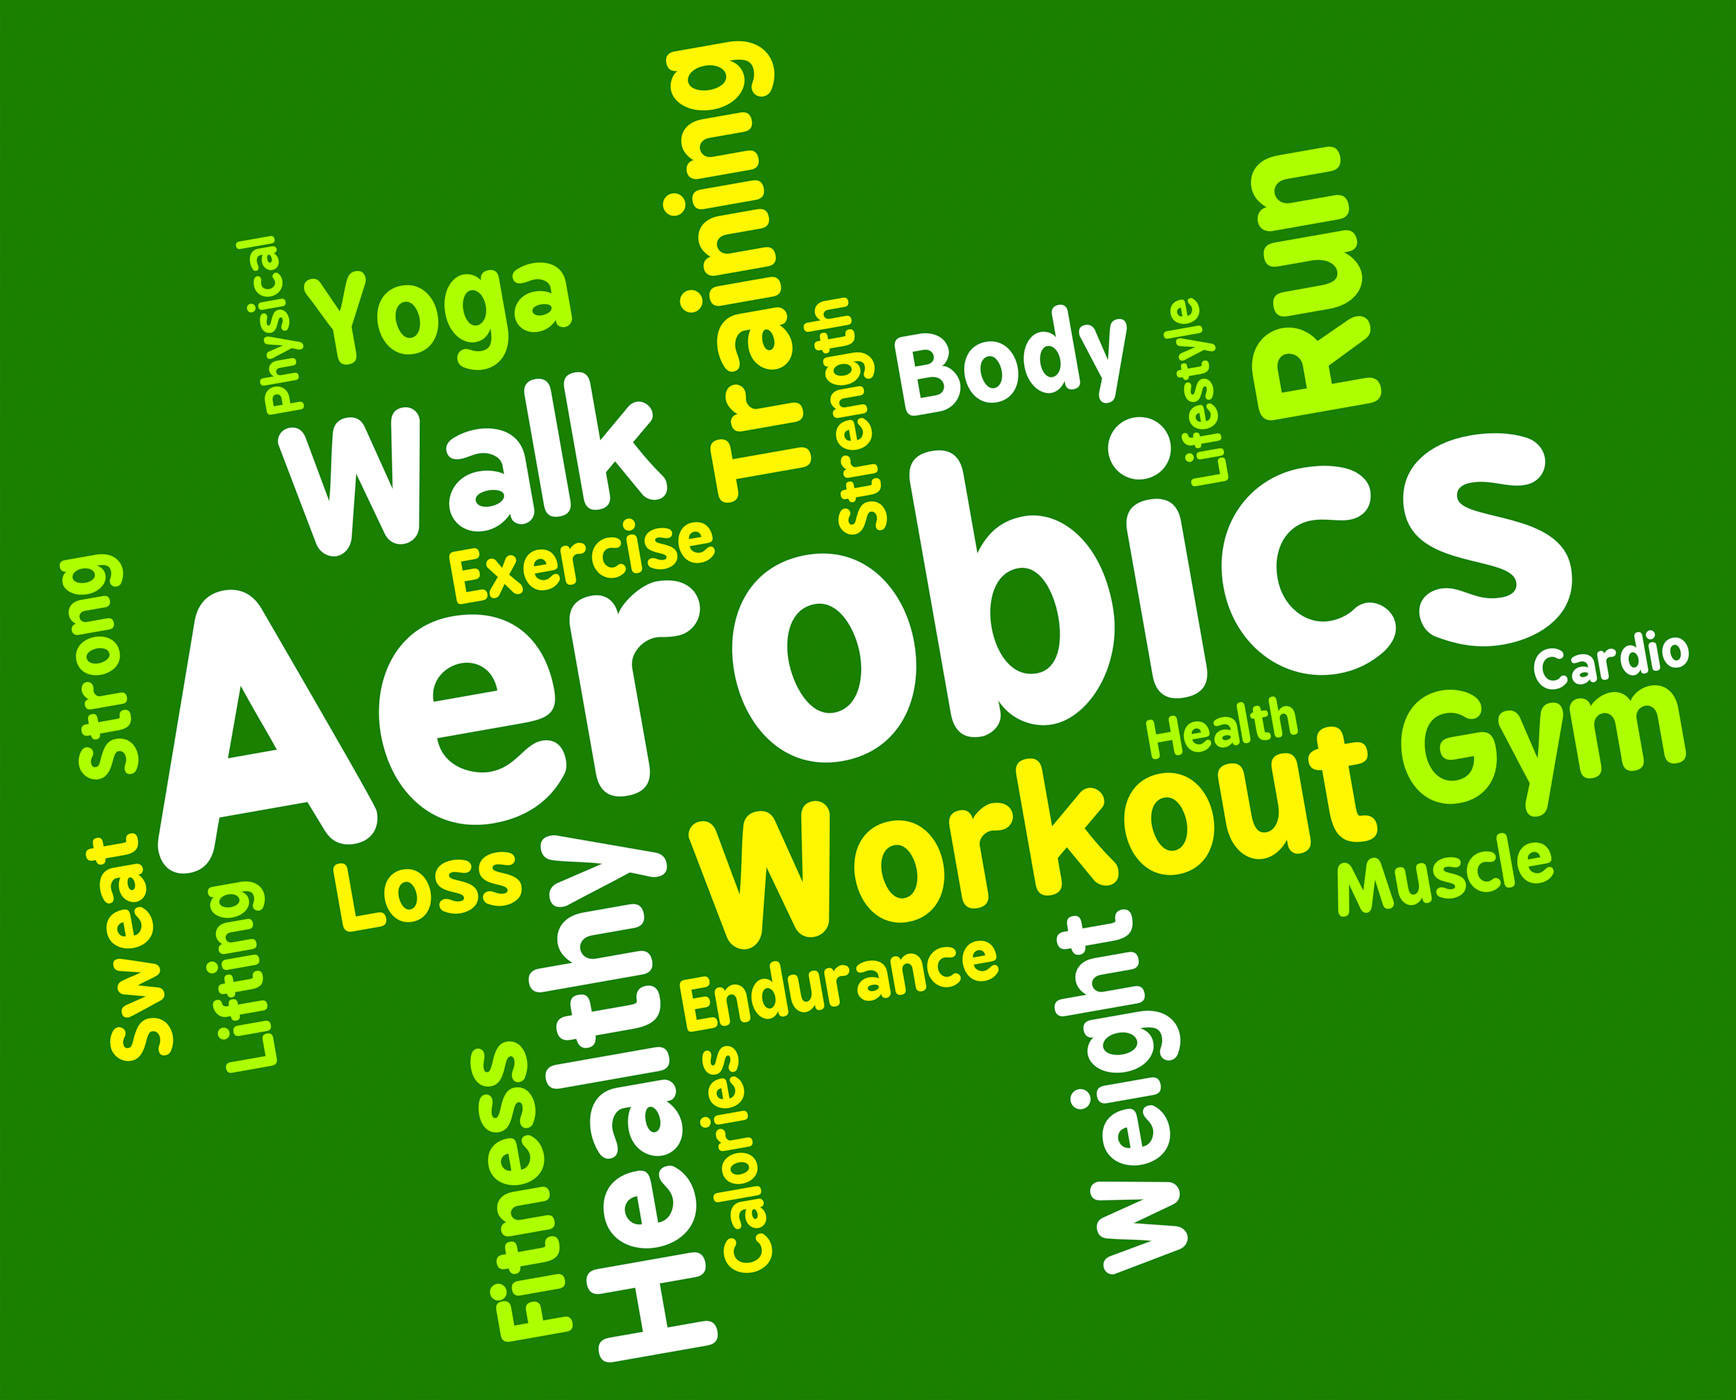 Aerobics words shows get fit and cardio photo